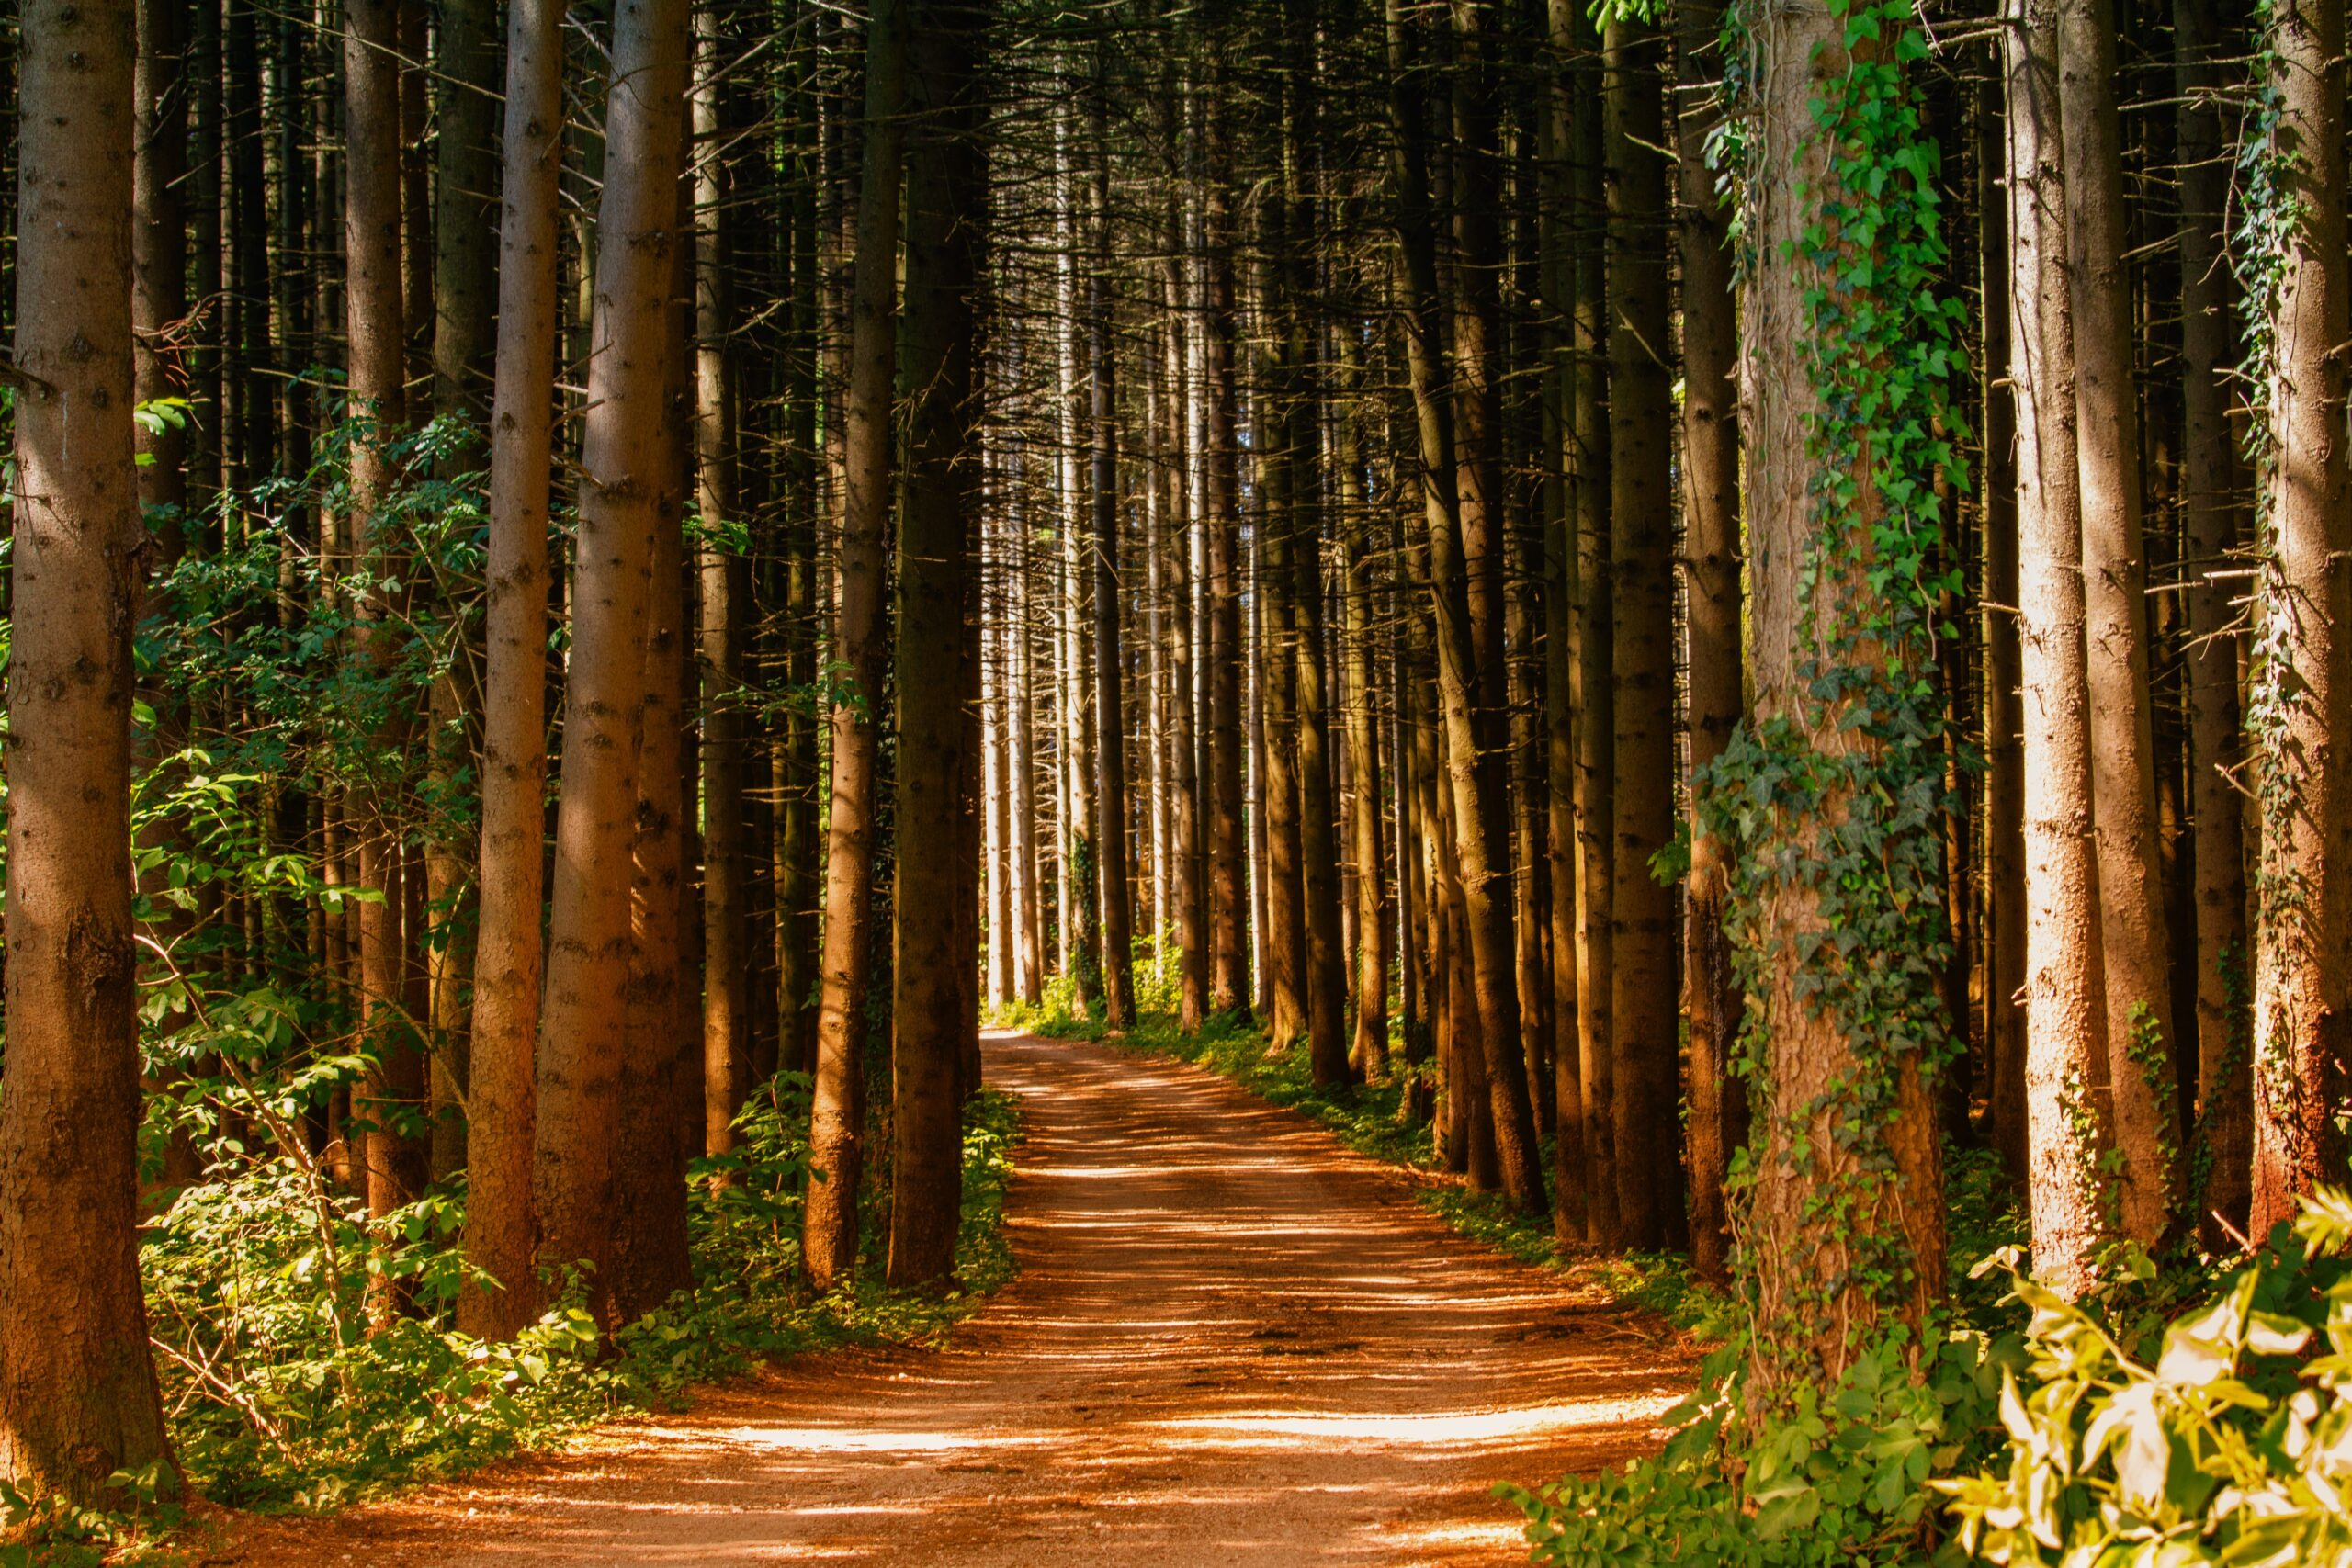 Health benefits of forest bathing